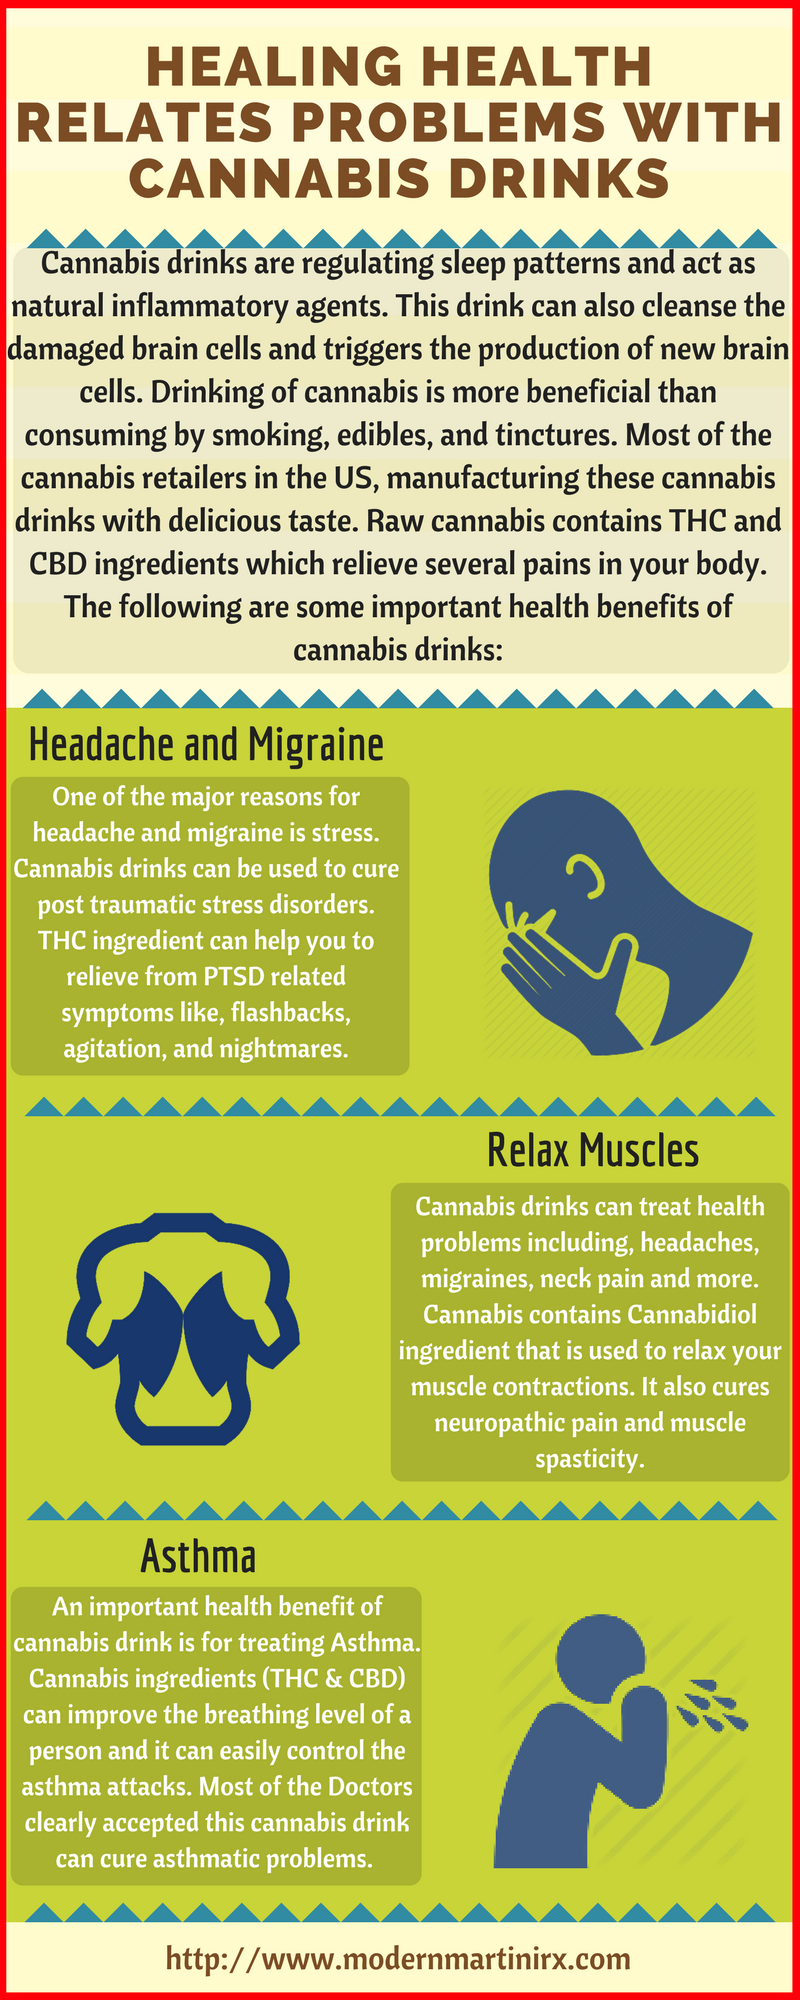 healing-health-relates-problems-with-cannabis-drinks-infographic-plaza